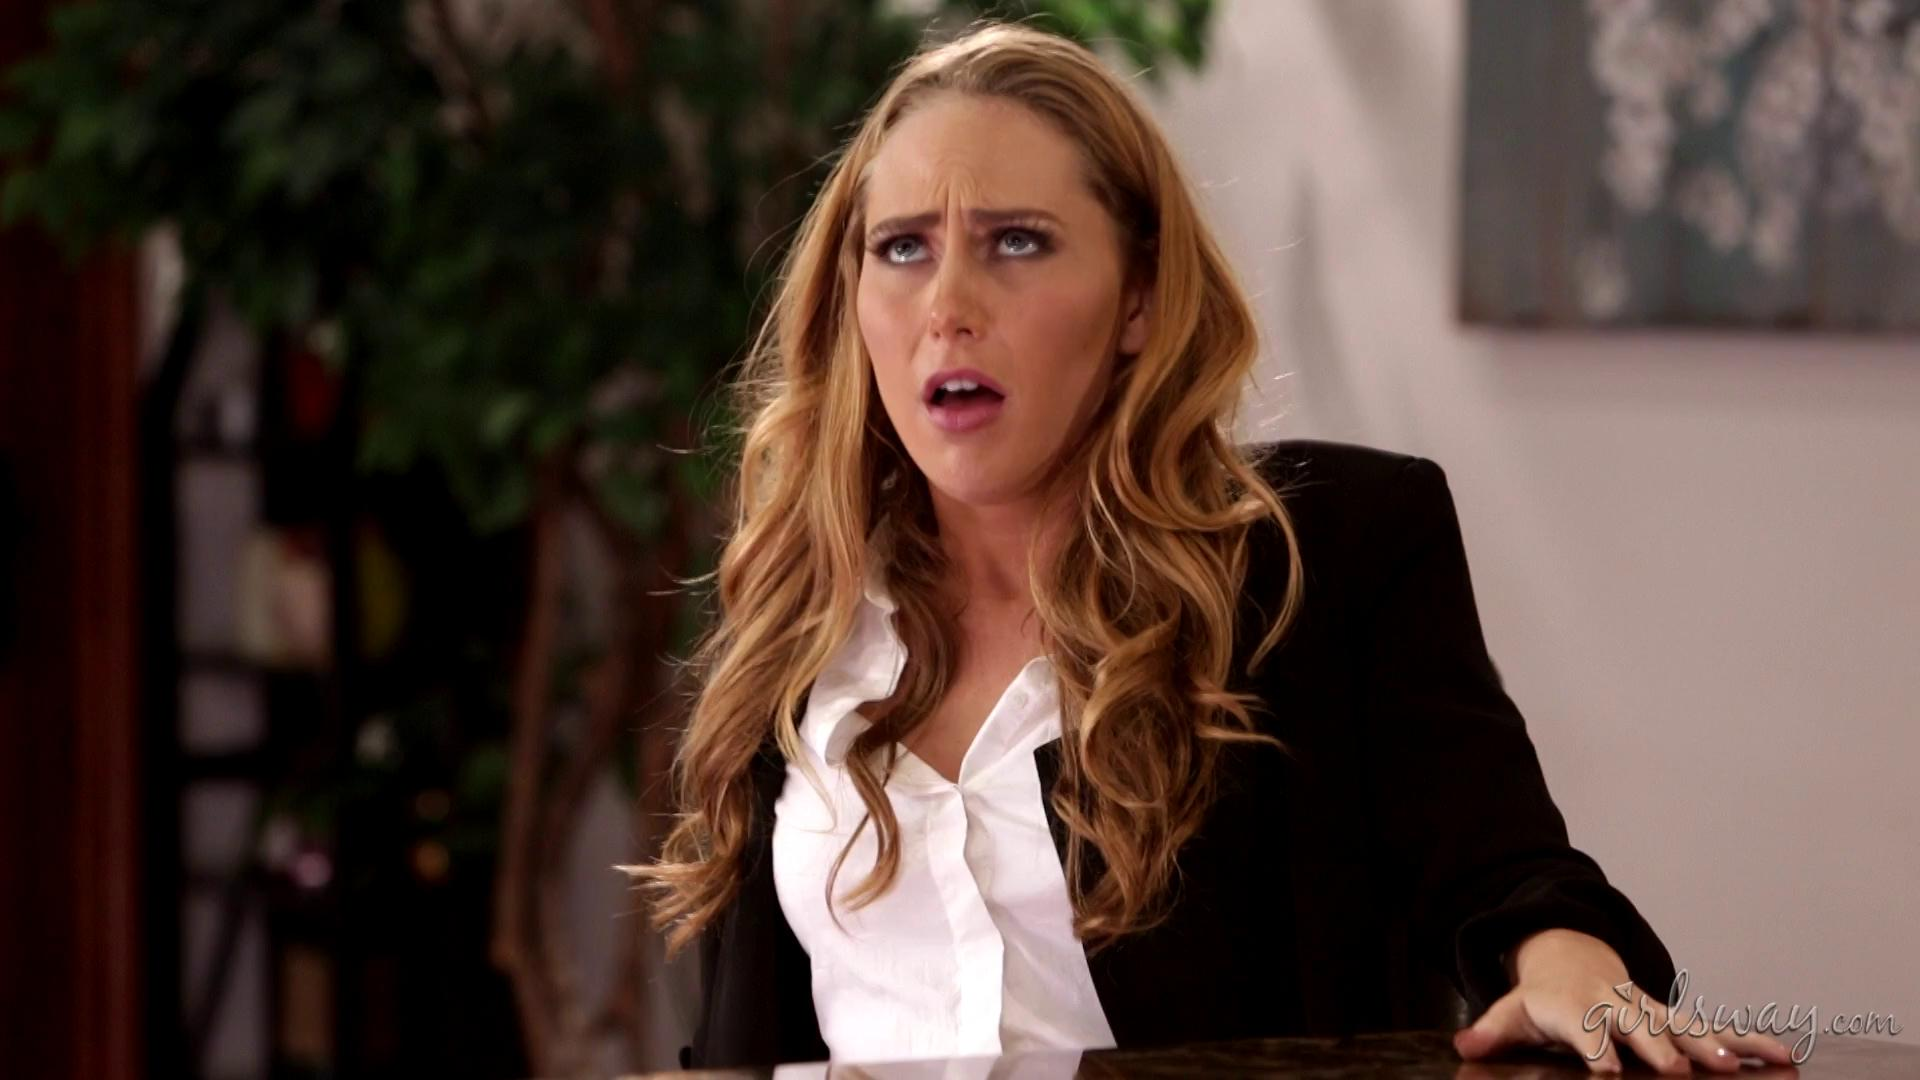 GirlsWay – Carter Cruise And Chanell Heart The Interview